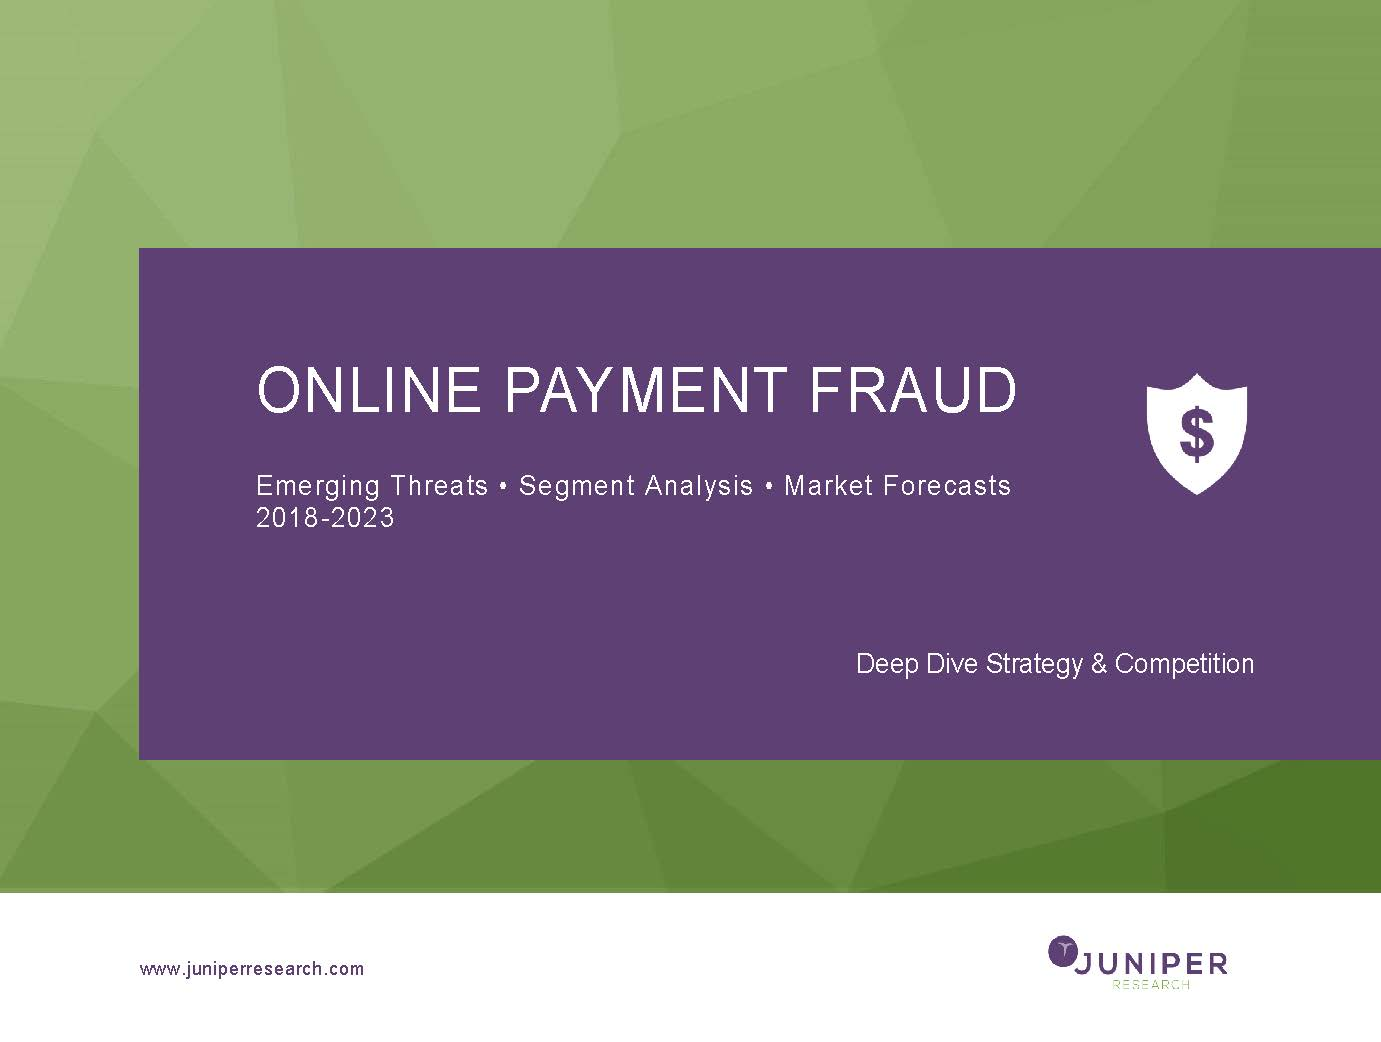 Online Payment Fraud: Deep Dive Strategy & Competition 2018-2023